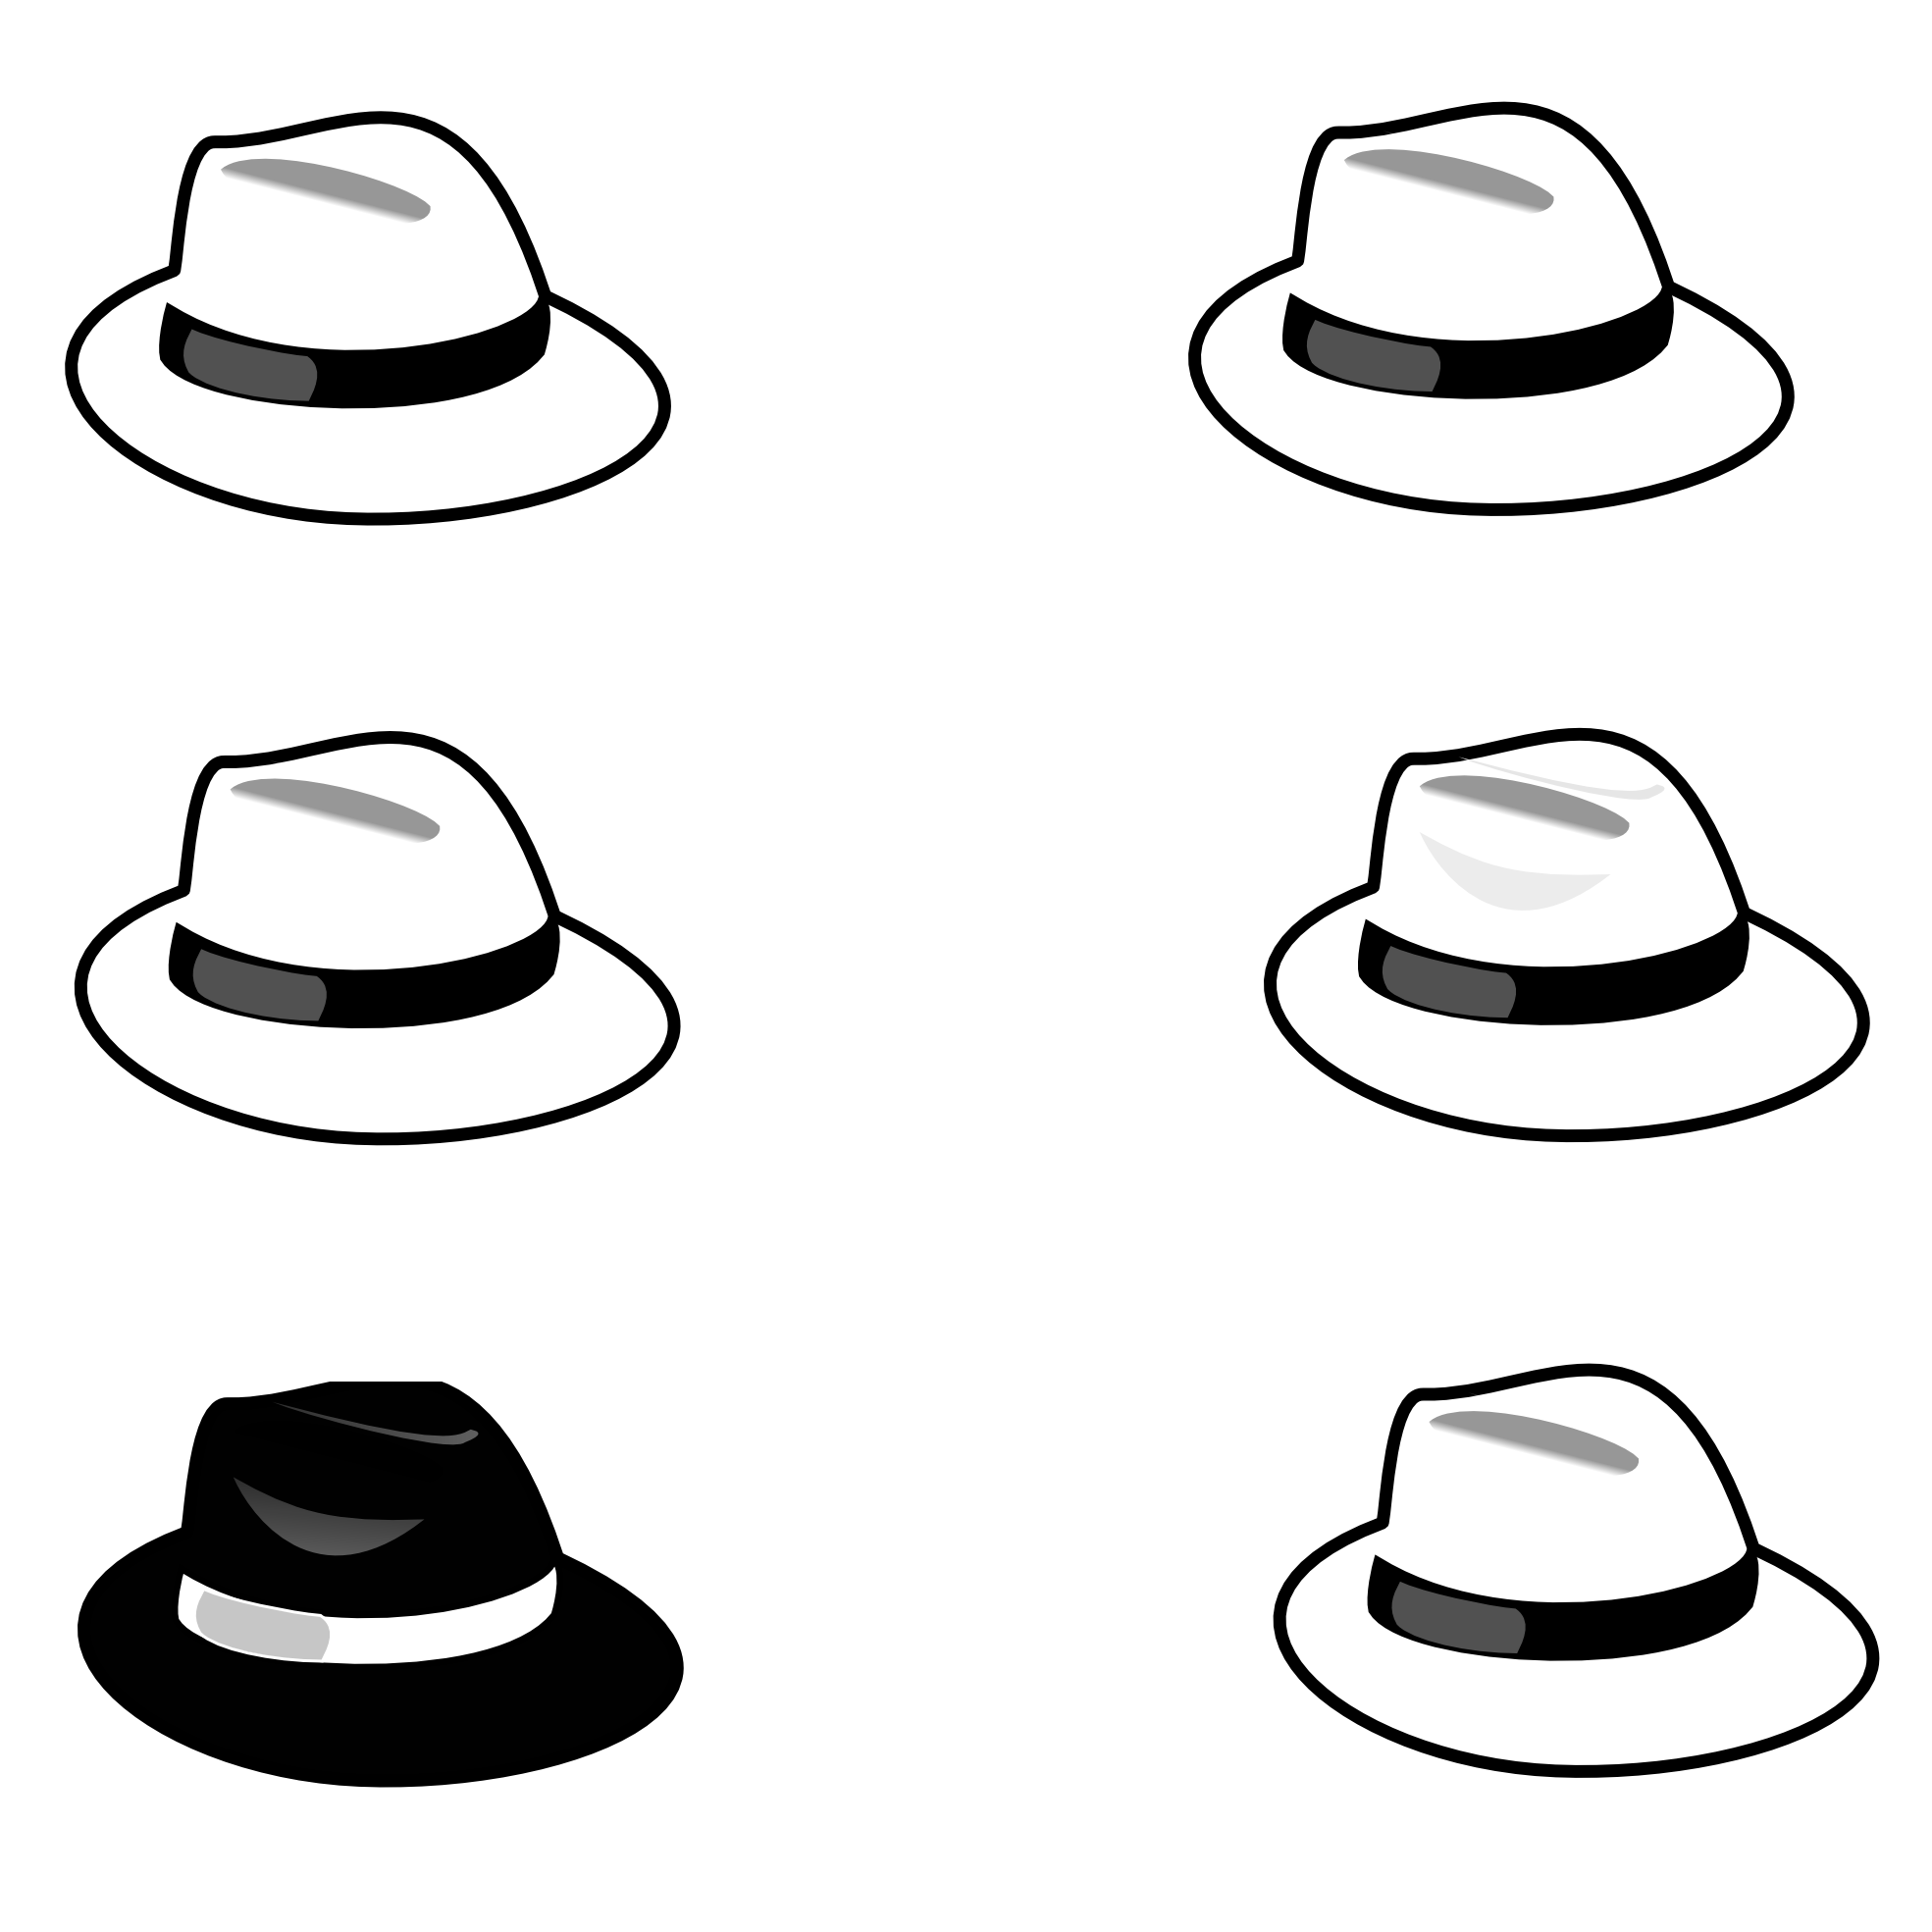 Black And White Hat Part : Pirate hat clip art black and white clipart best